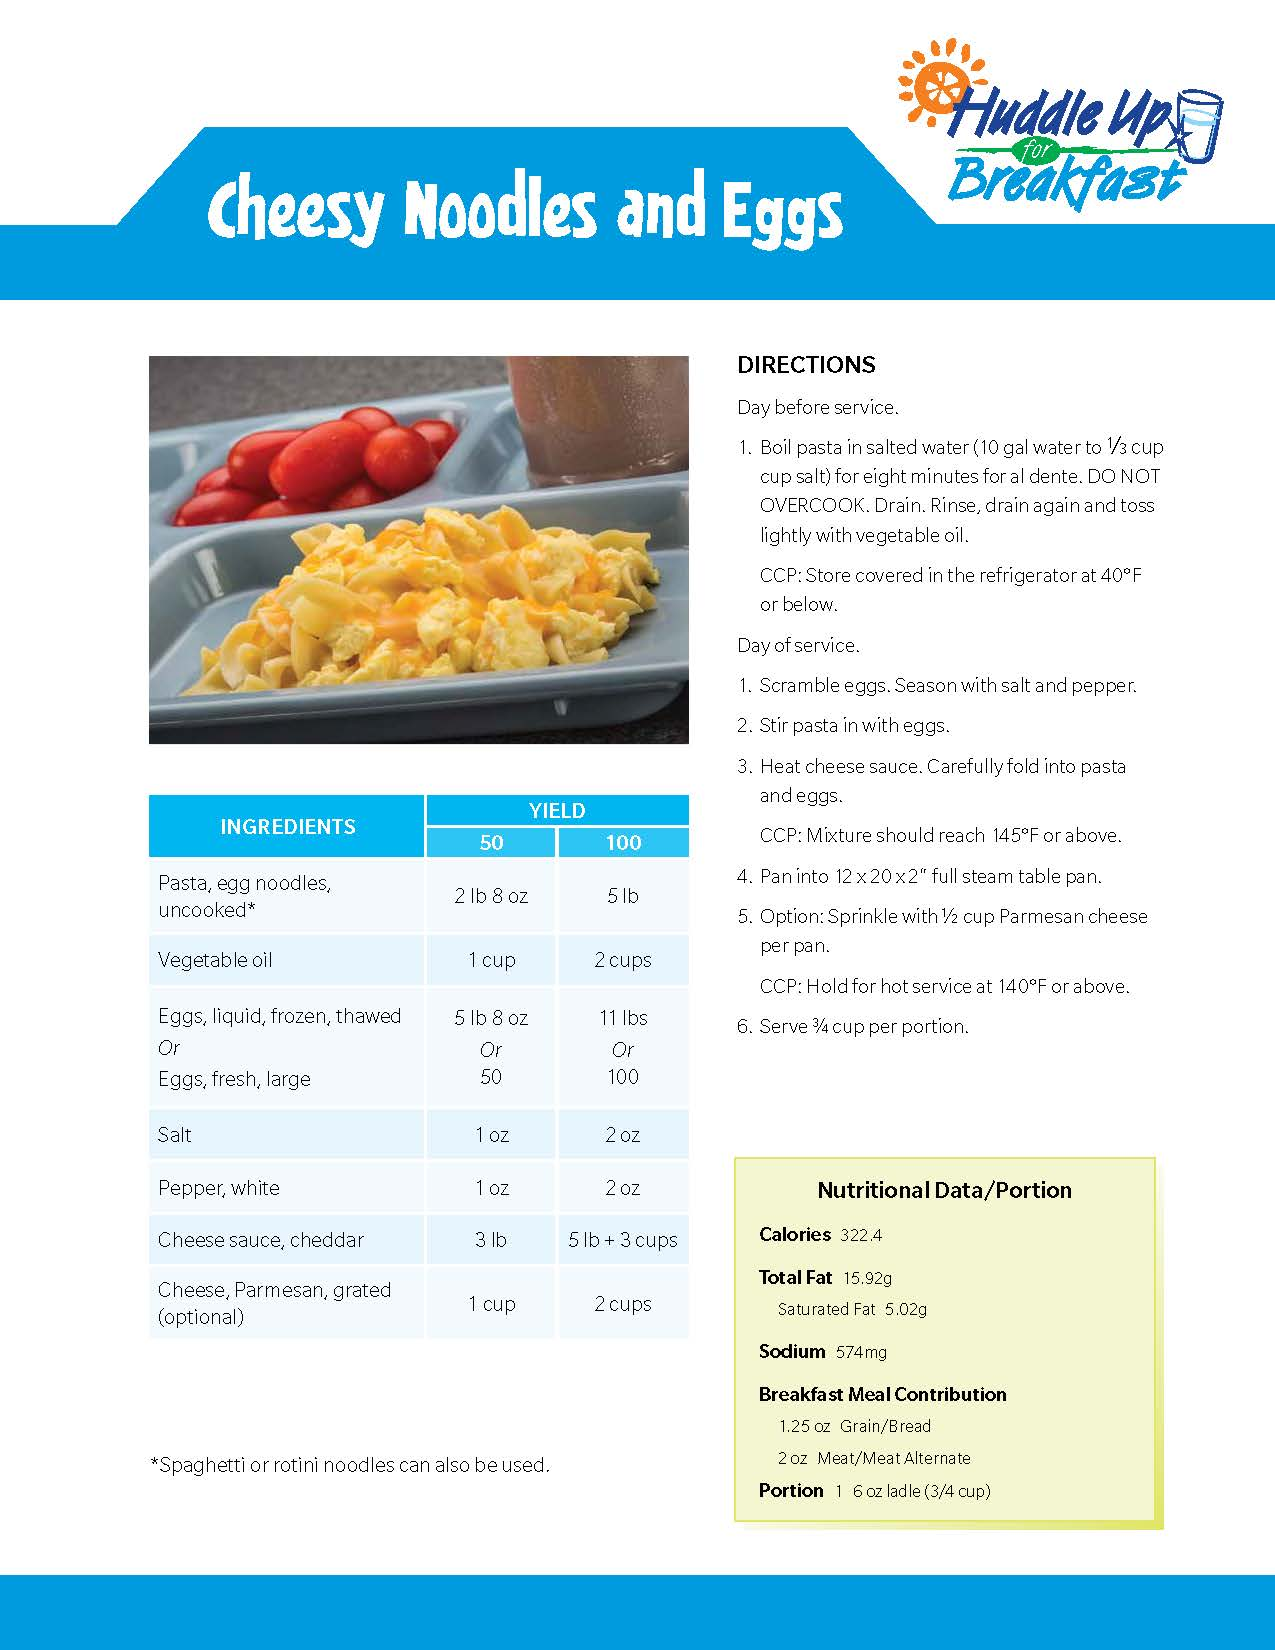 Cheesy Noodles And Eggs Main Image